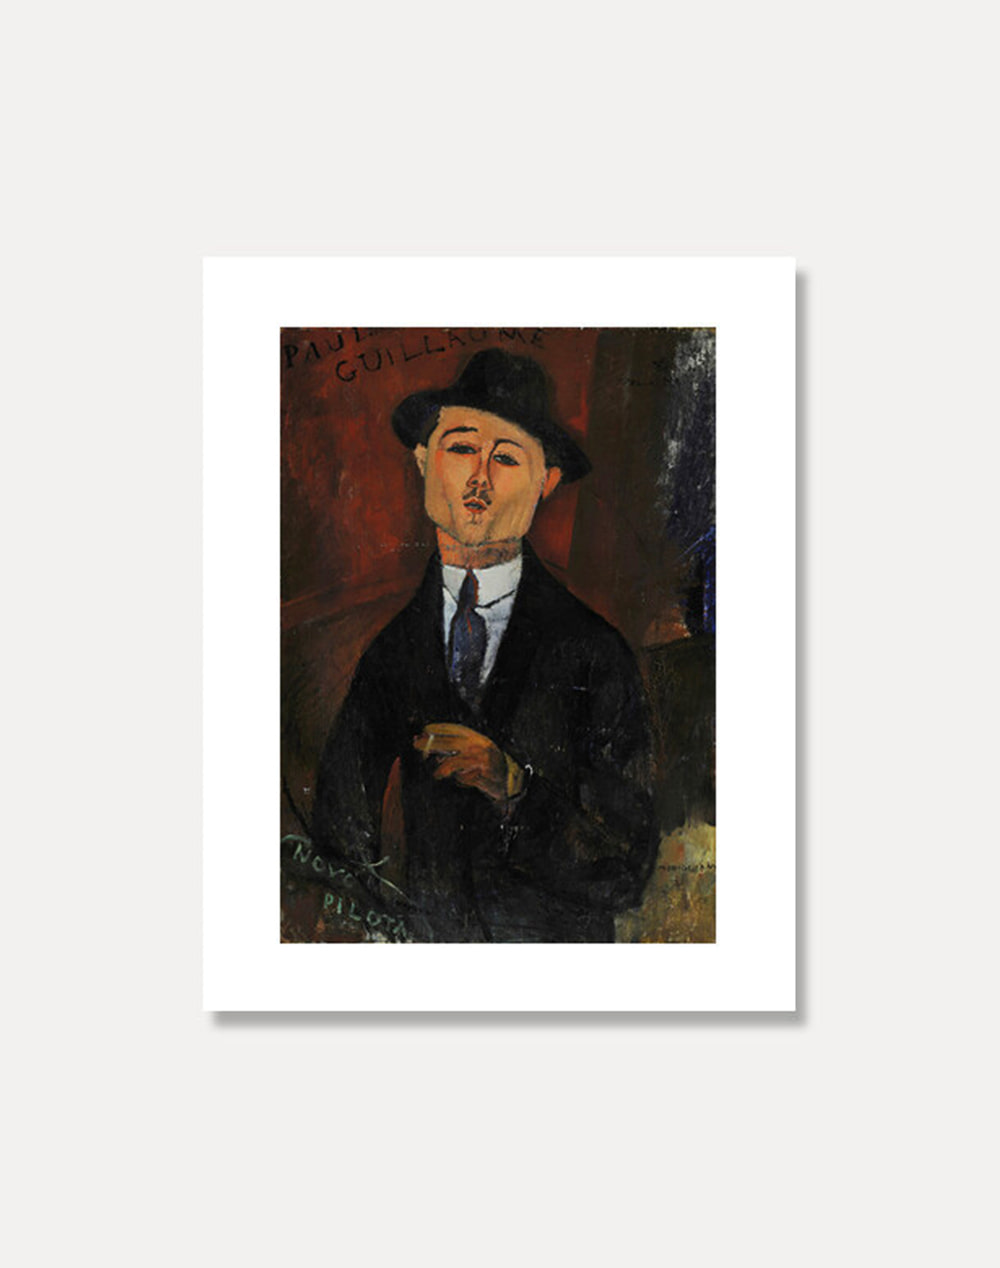 [아메데오 모딜라니]AMEDEO MODIGLIANI ― Paul Guillaume, Novo Pilota  20 x 25 cm